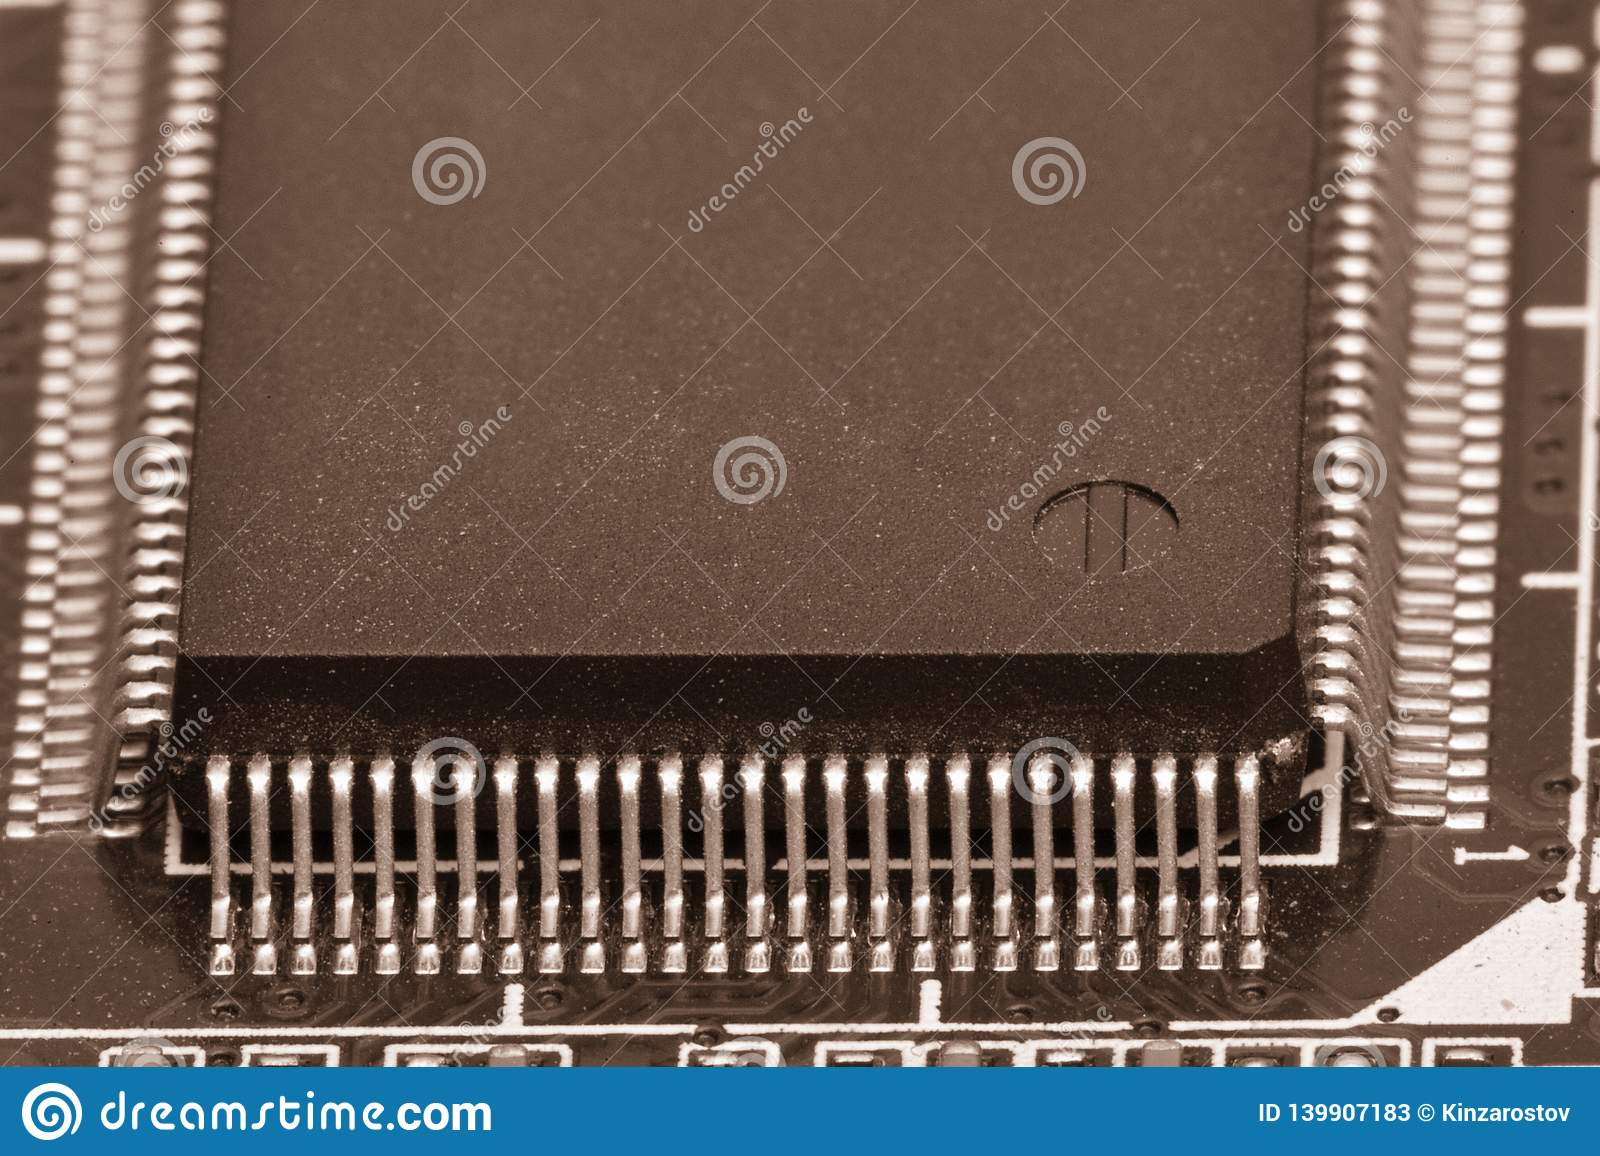 Electronic components are mounted on the device board Toned image